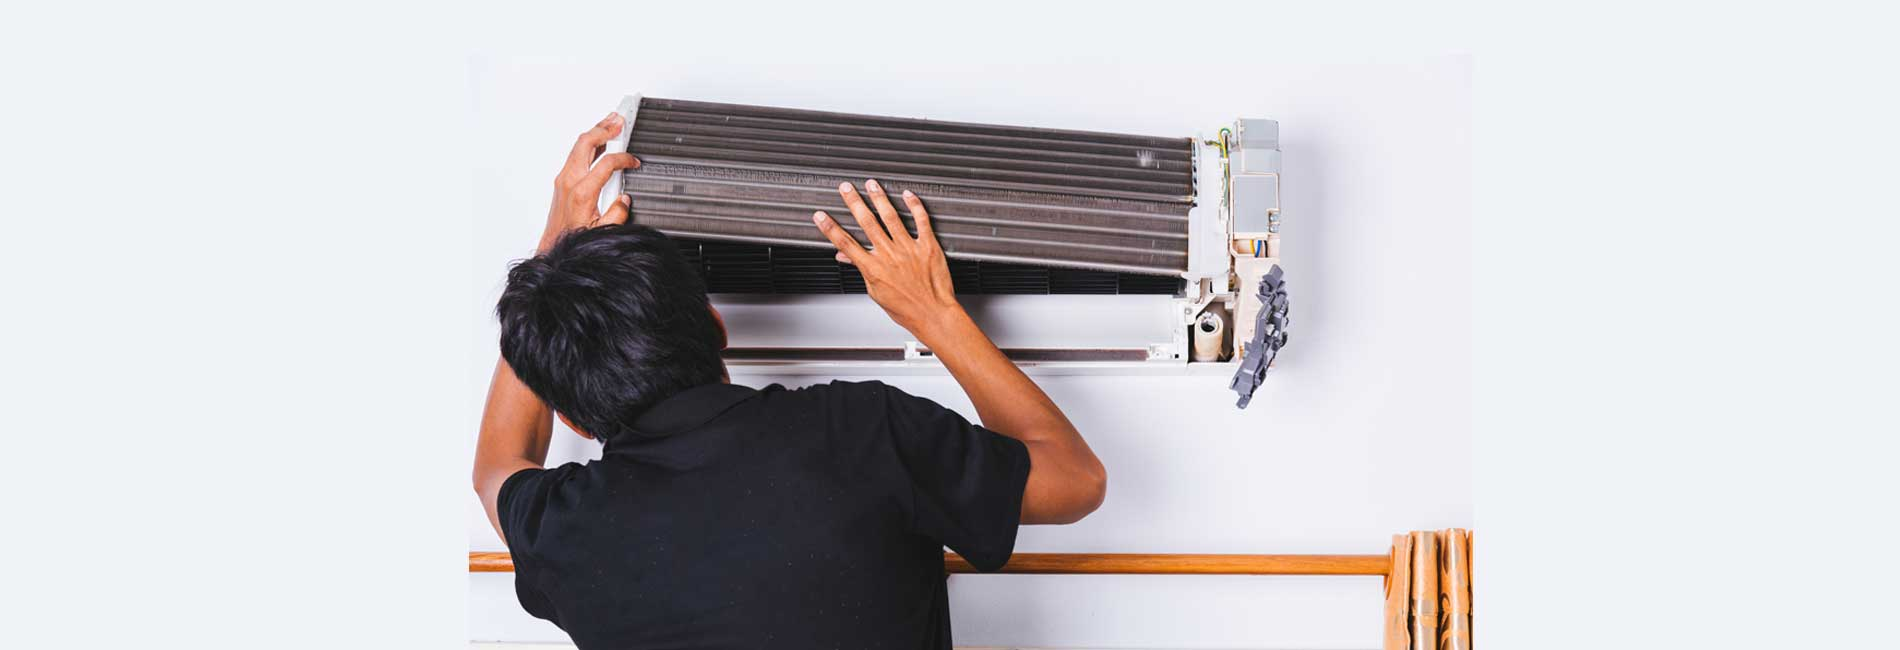 Split AC Uninstallation in Peravallur